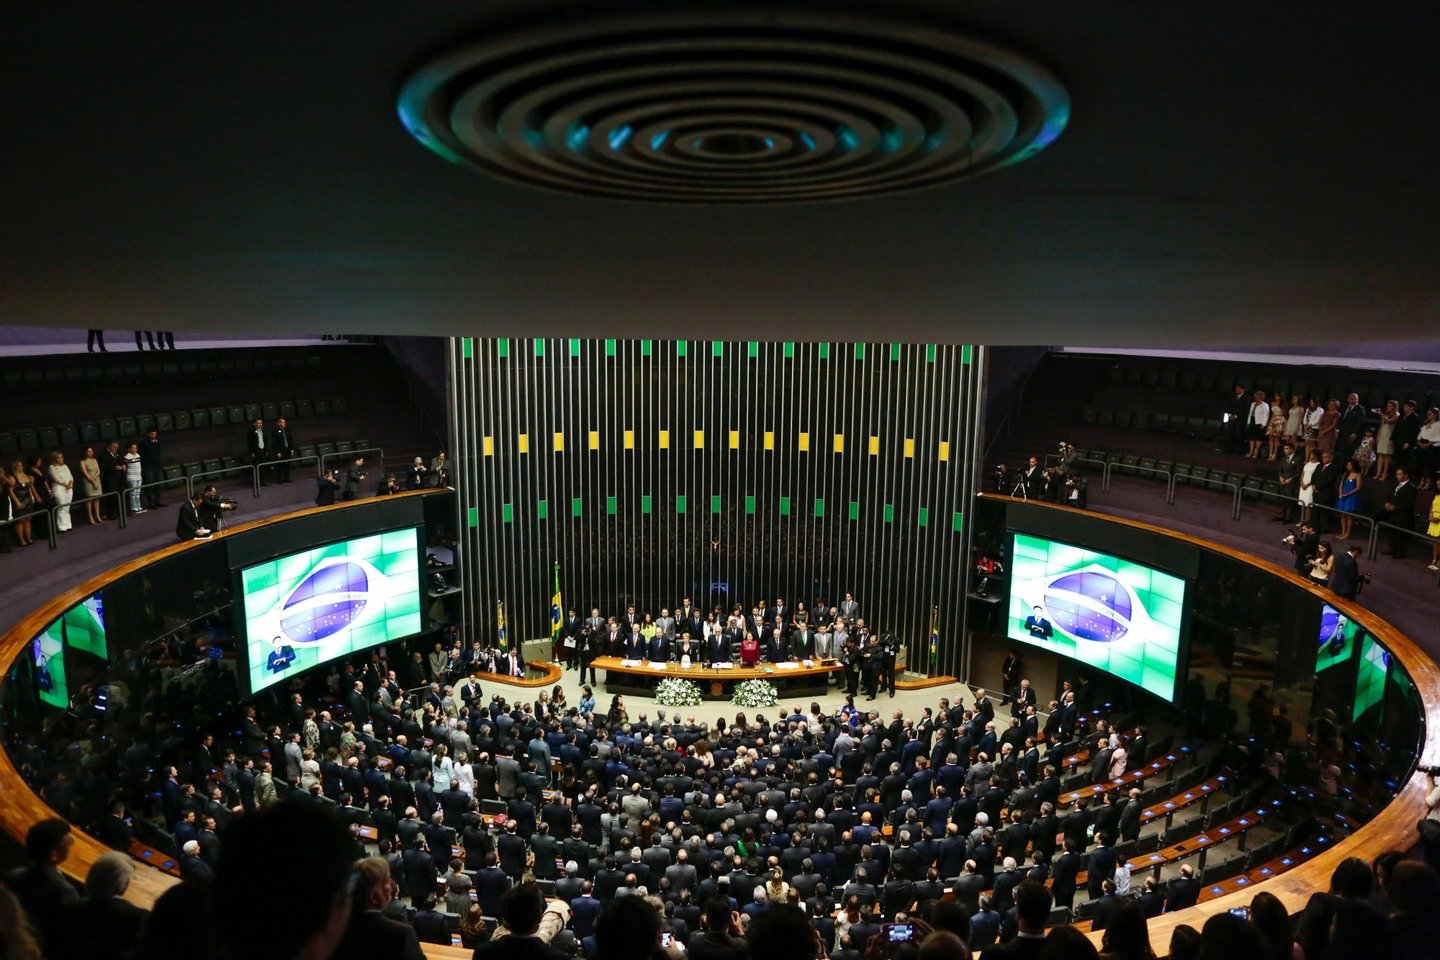 The newly elected Brazilian deputies swear in on February 1, 2015 at the congress in Brasilia. AFP PHOTO / Wenderson Araujo (Photo credit should read WENDERSON ARAUJO/AFP/Getty Images)